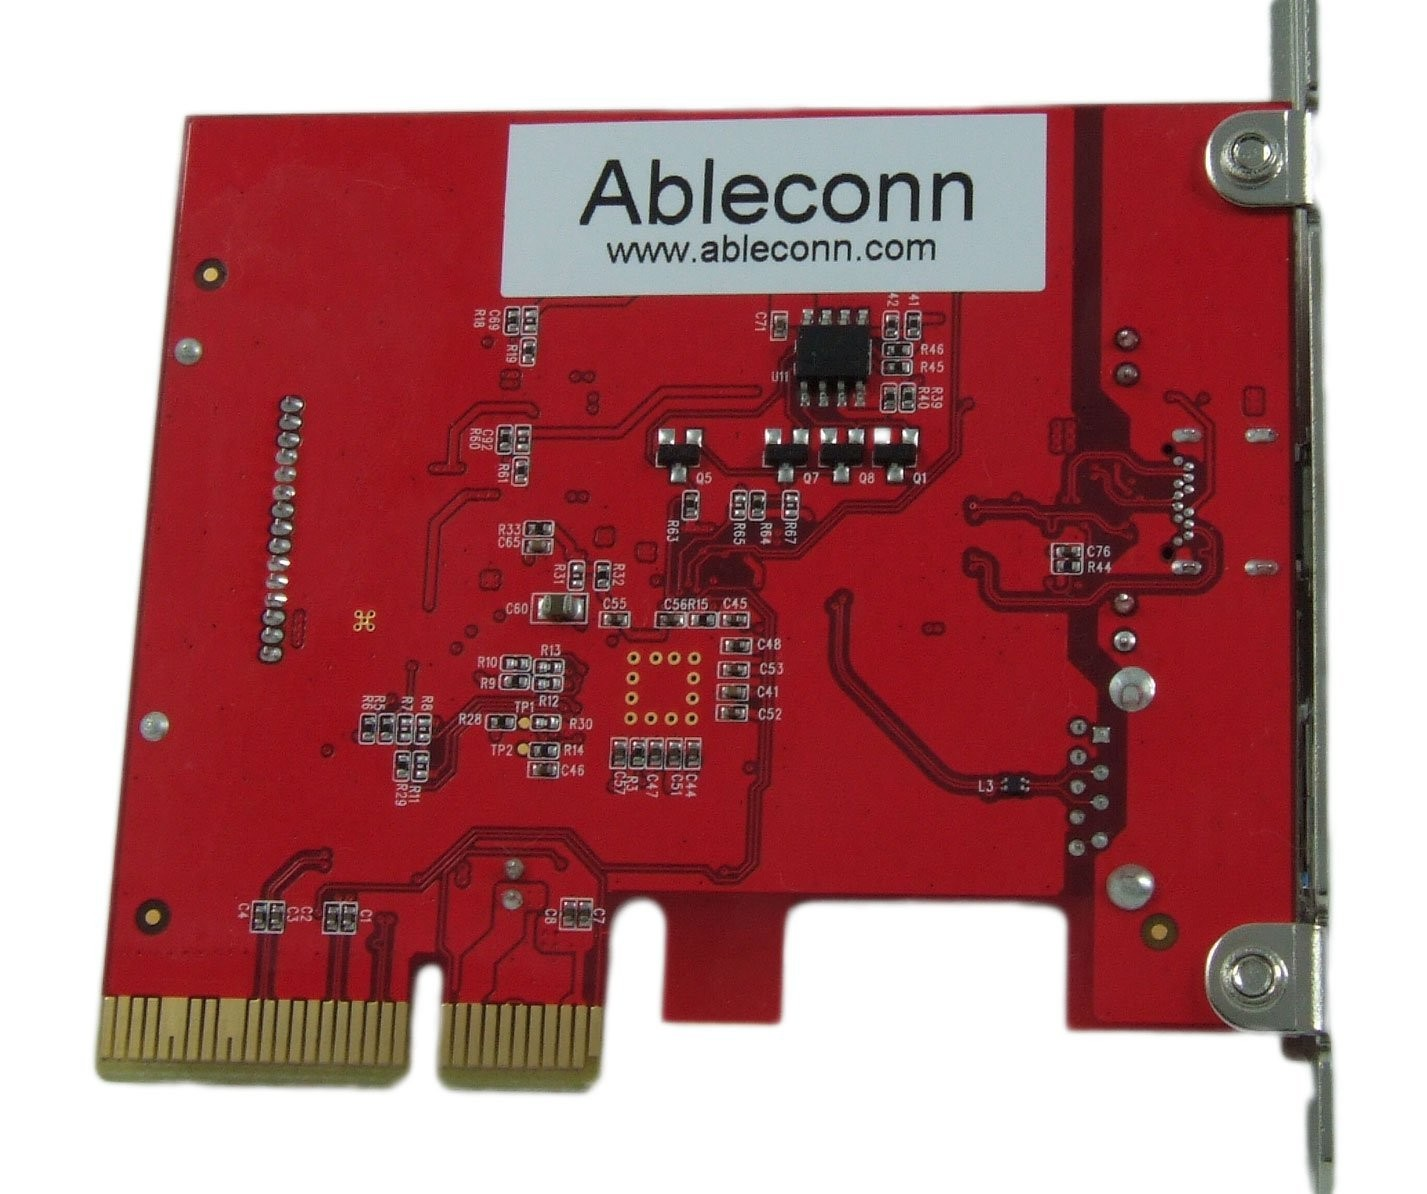 Ableconn USB 3.1 Gen 2 (10 Gbps) Type-C & Type-A PCI Express (PCIe) x4 Host Adapter Card - For Mac Pro, PU31-1A1C